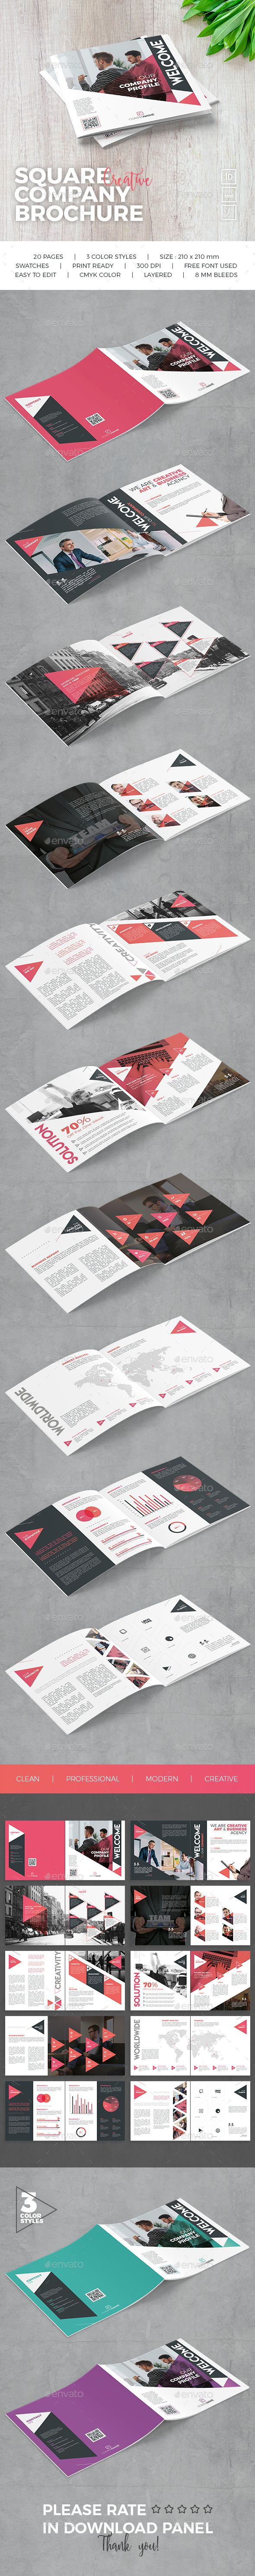 The 7711 best graphic design prints images on pinterest page square company brochure fandeluxe Choice Image